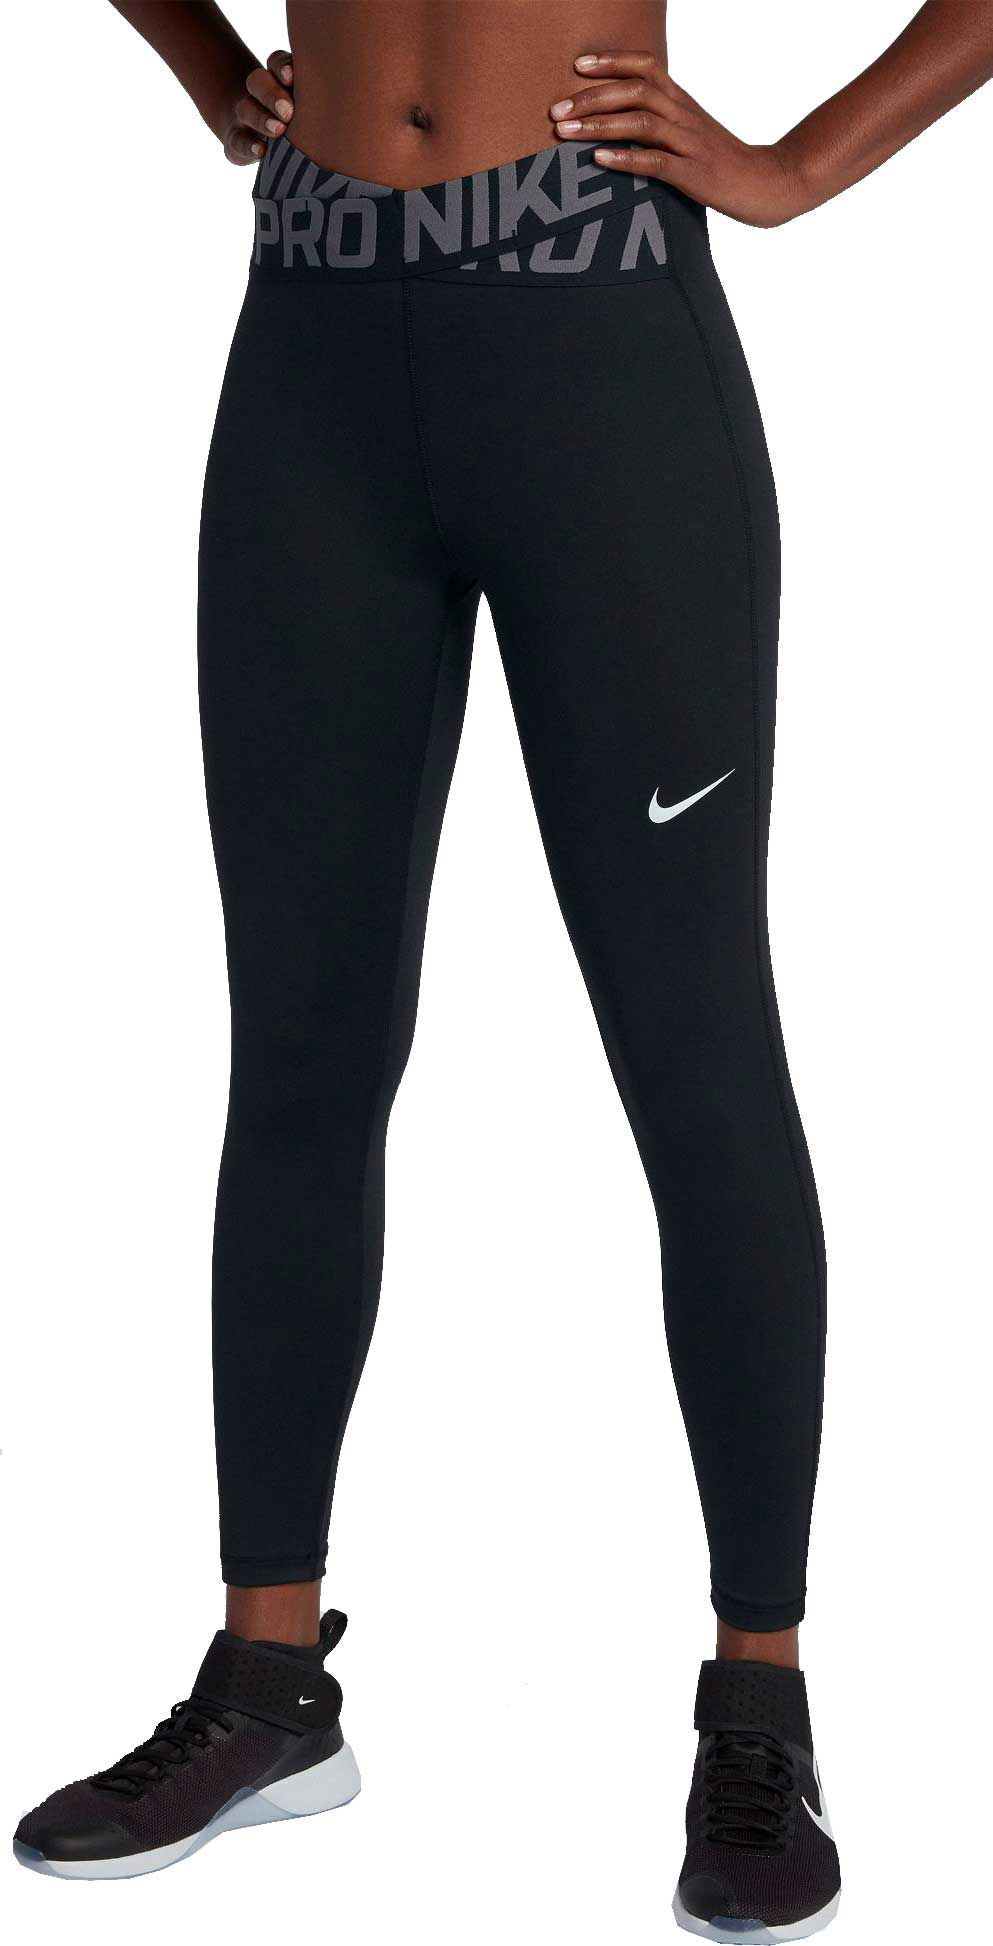 d504e16315d9ab Nike Women's Pro Intertwist 7/8 Training Tights, Size: Medium, Black ...